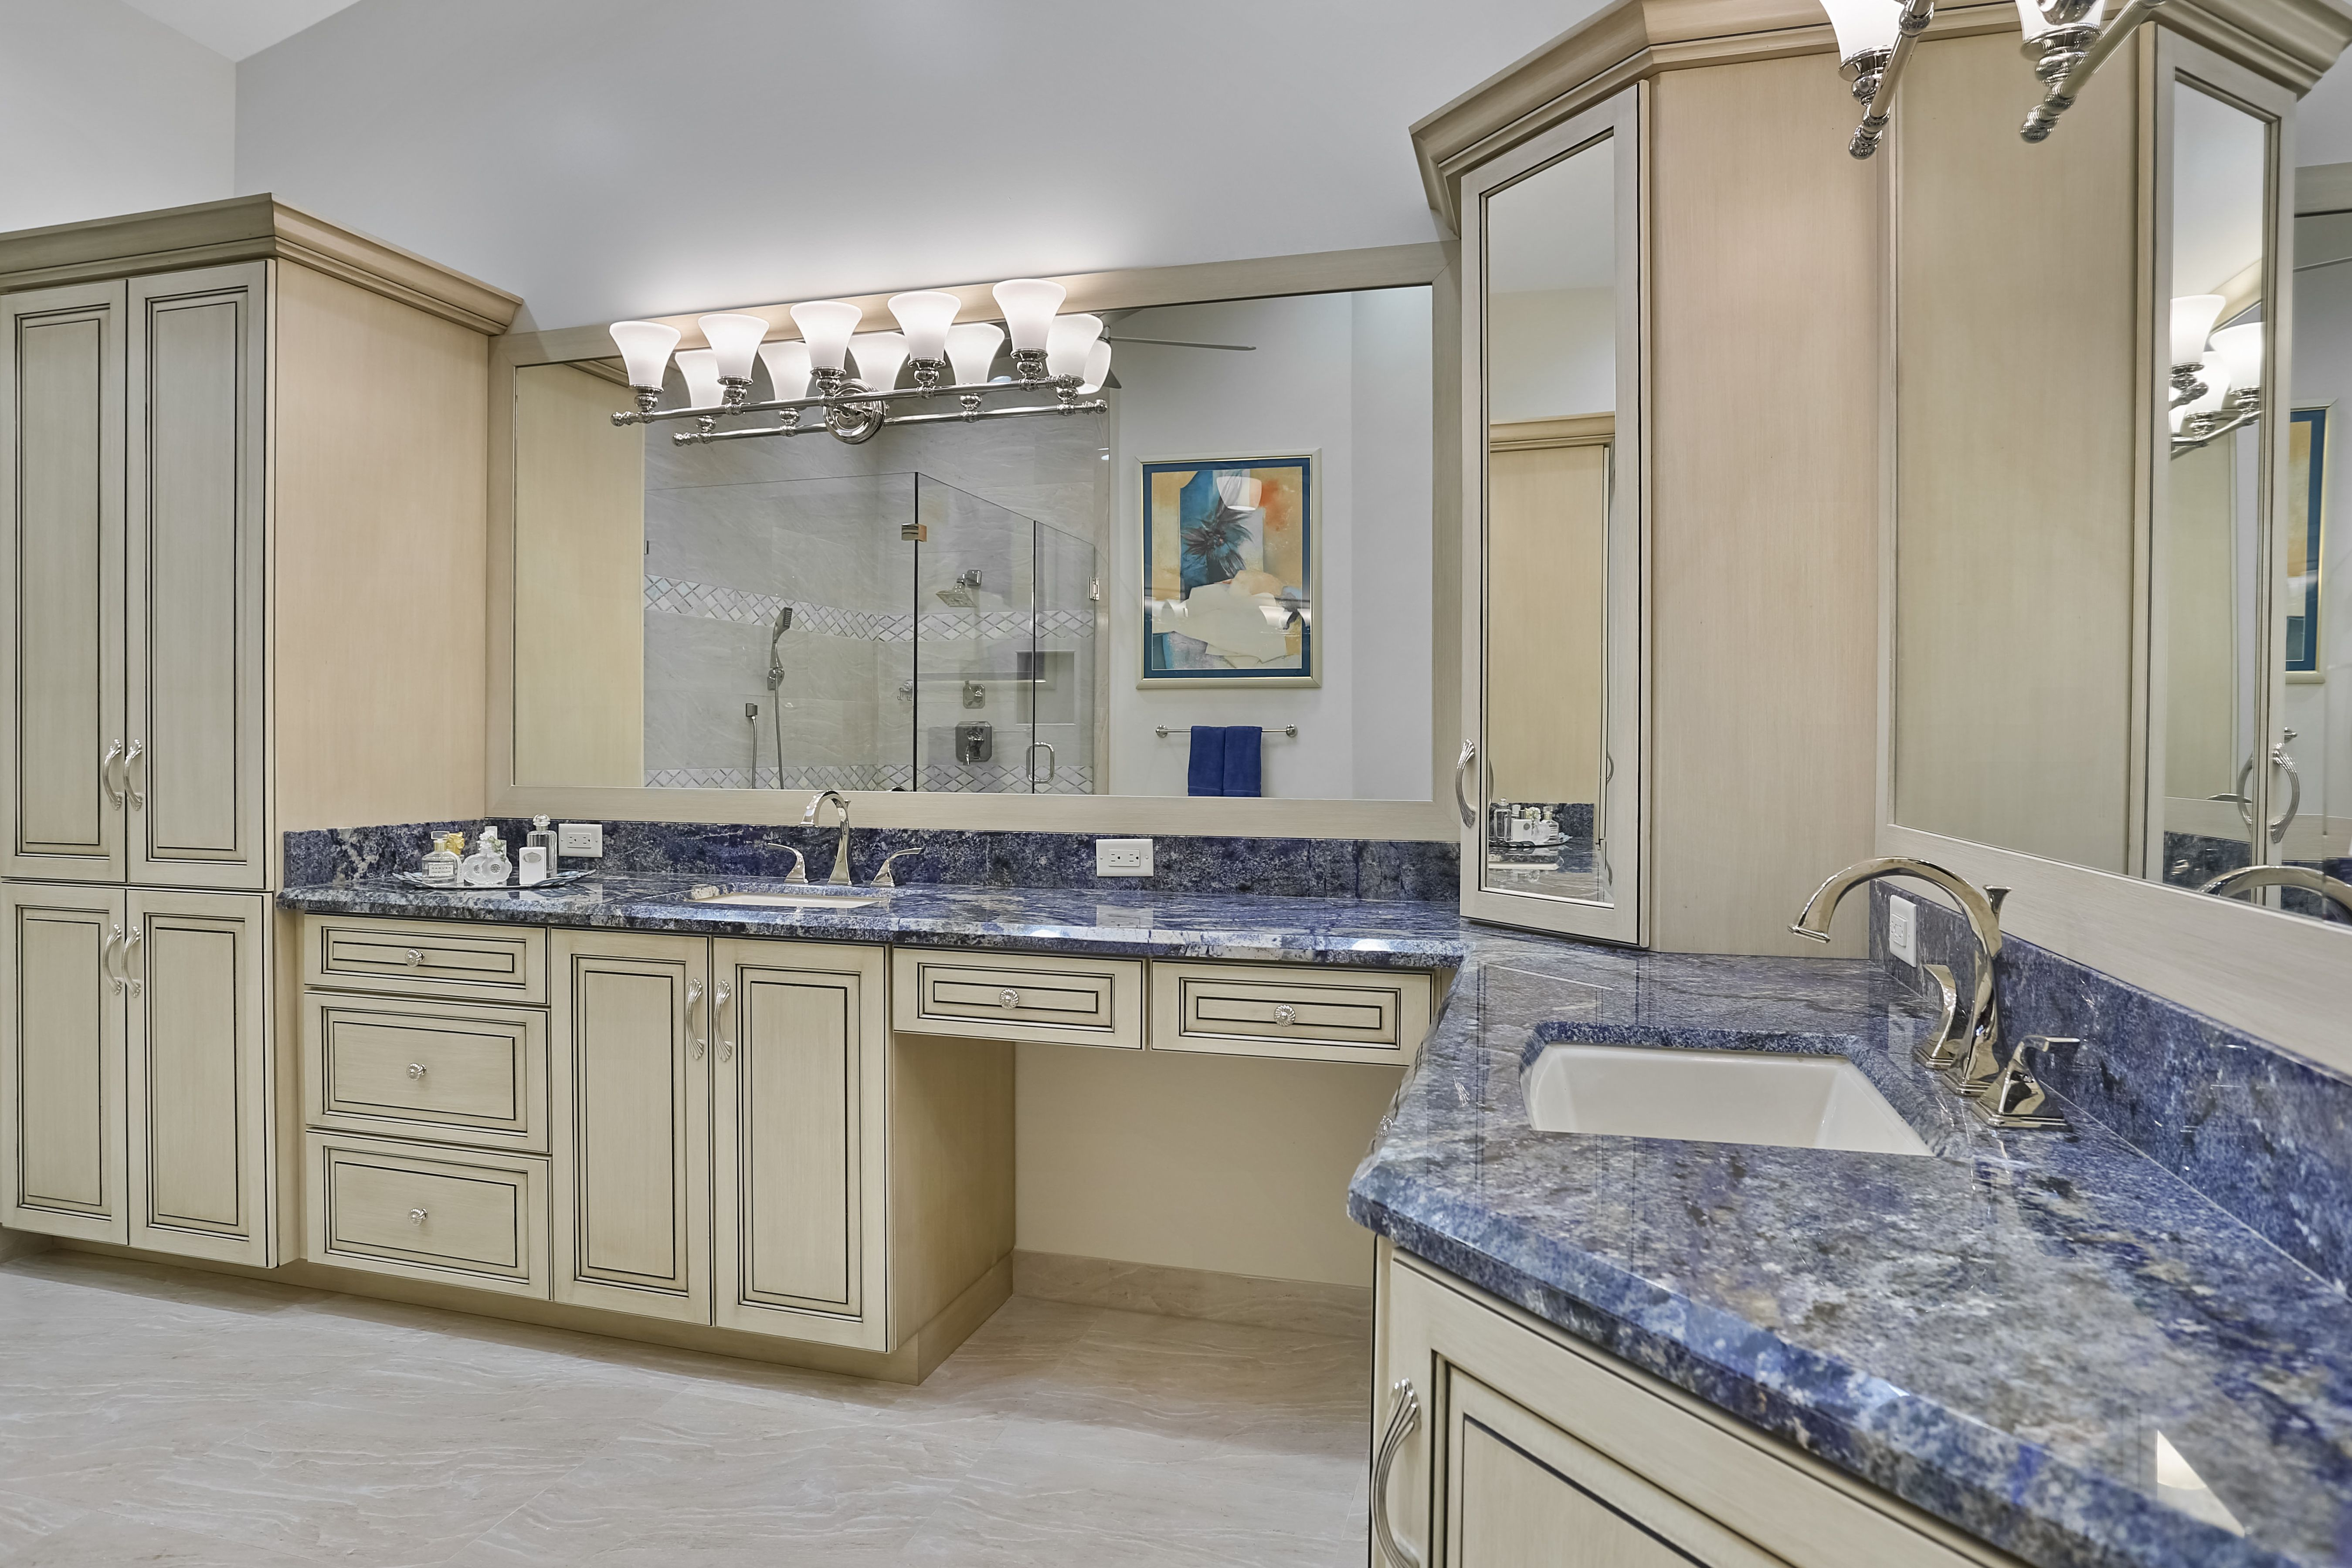 A new bathroom at the Polo Club in Boca Raton Redesign by Interior